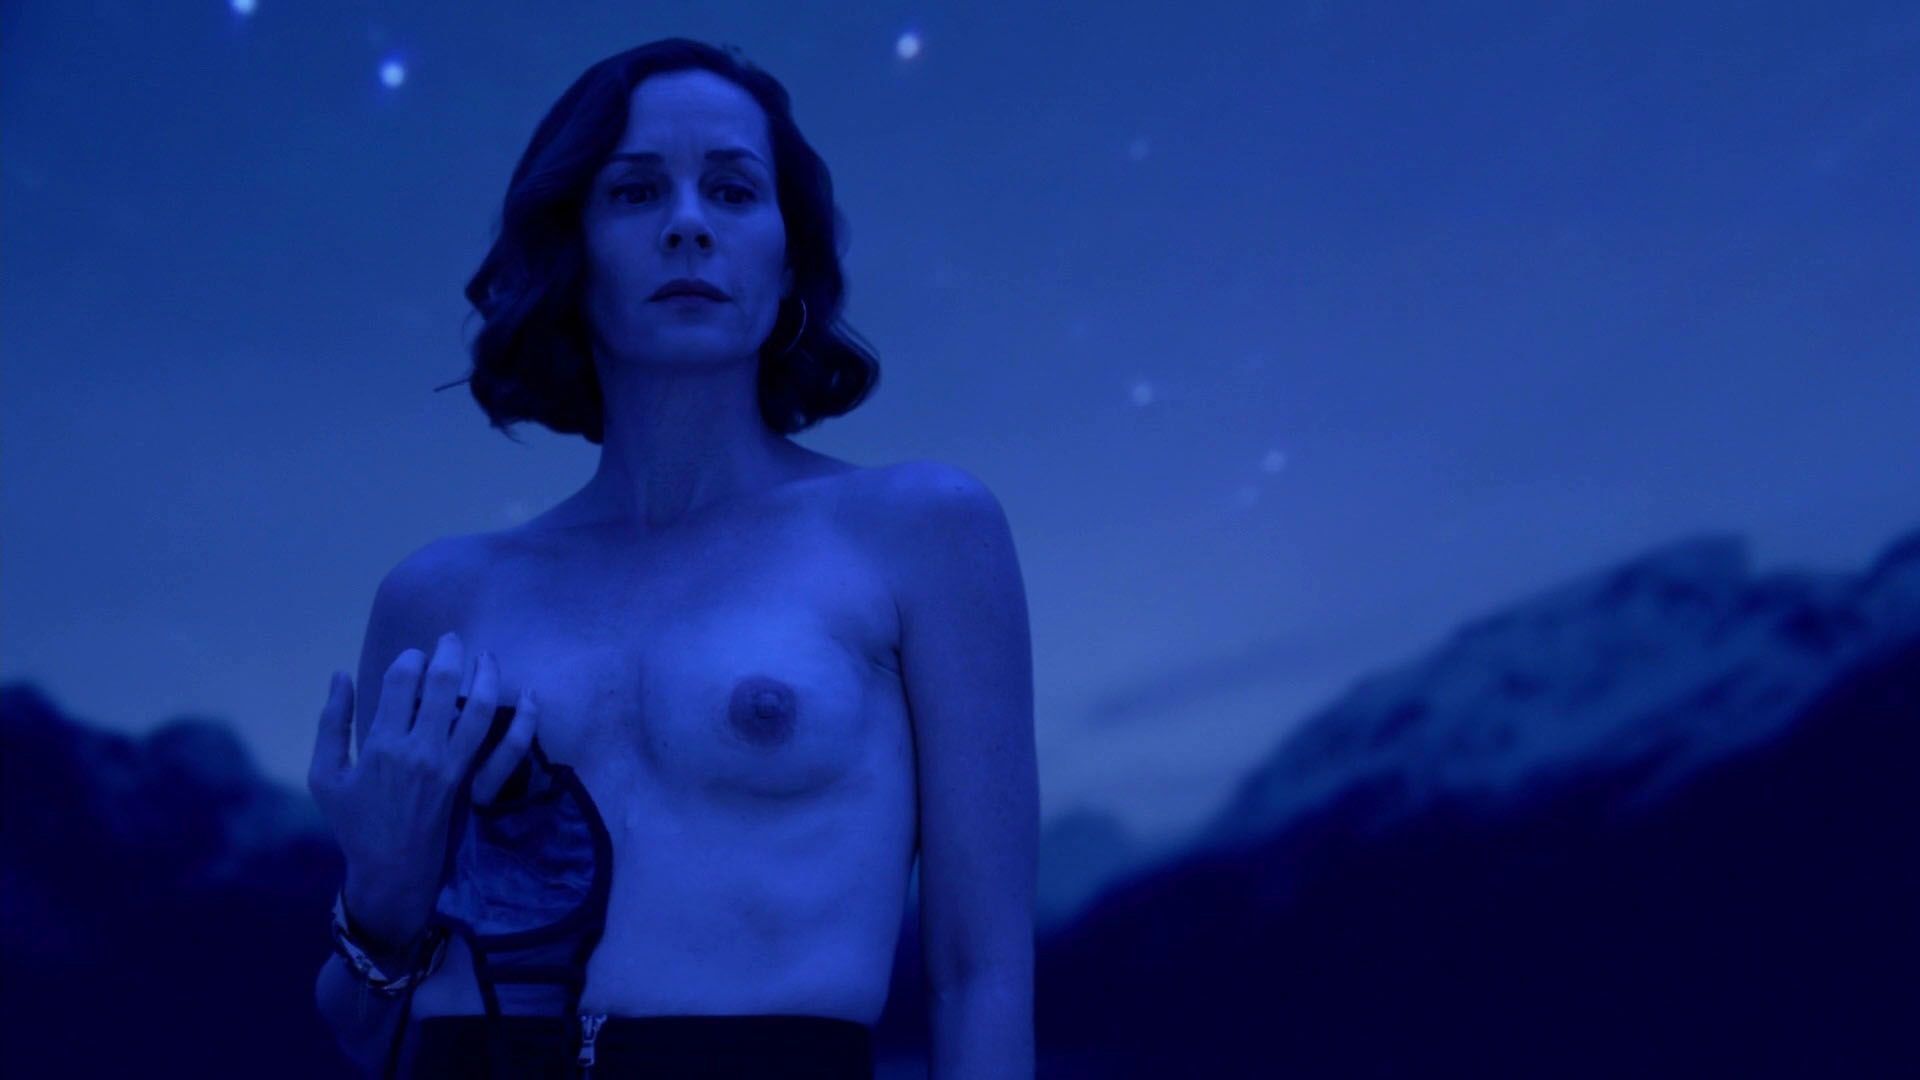 Embeth Davidtz Nude Photos And Videos Thefappening